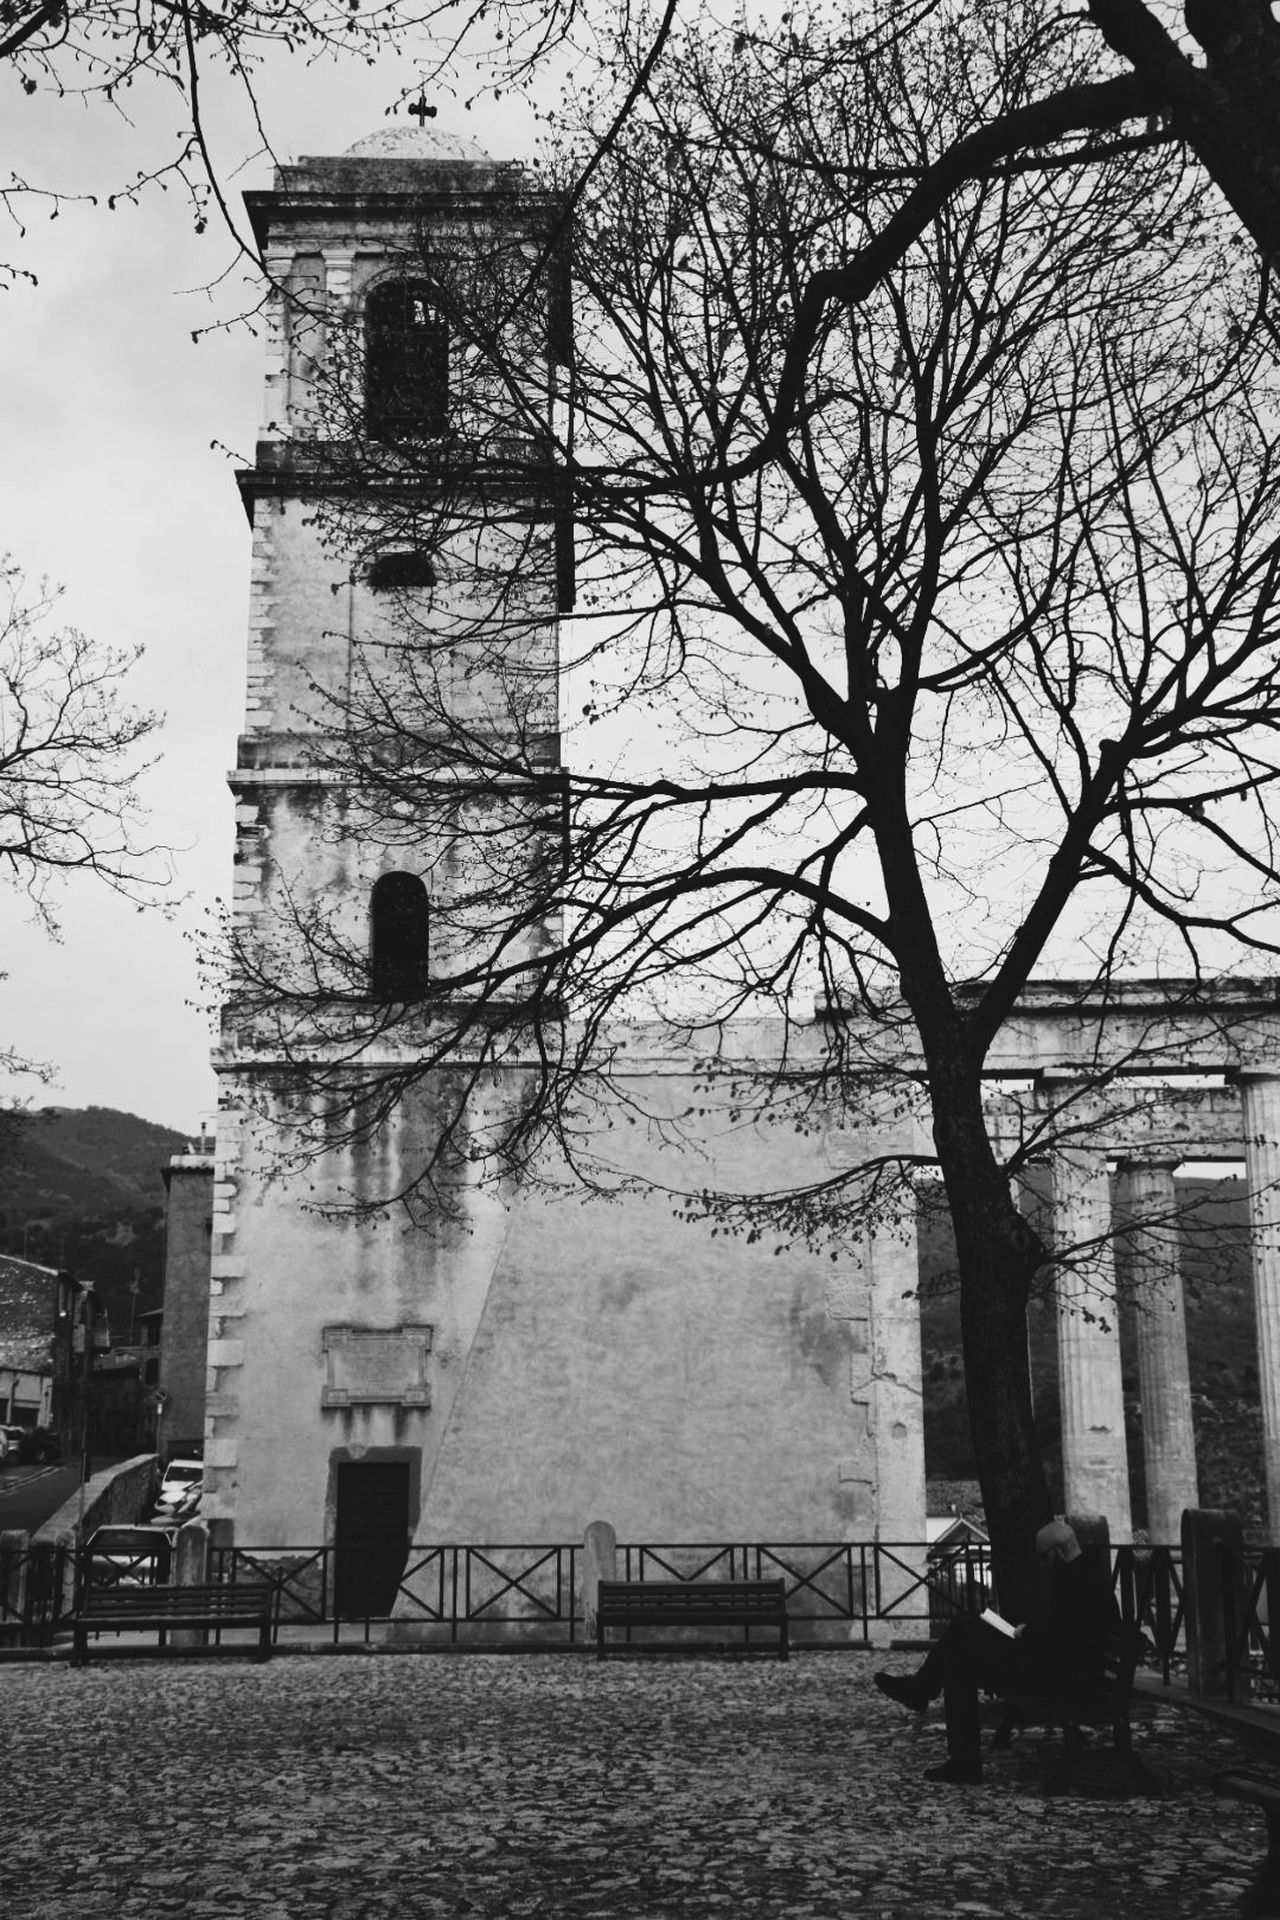 Architecture B&w Bare Tree Black & White Blackandwhite Blackandwhite Photography Branch Building Exterior Built Structure Cori Day Full Length Italy Lifestyles Men One Person Outdoors People Real People Rear View Sky Tempio Tree